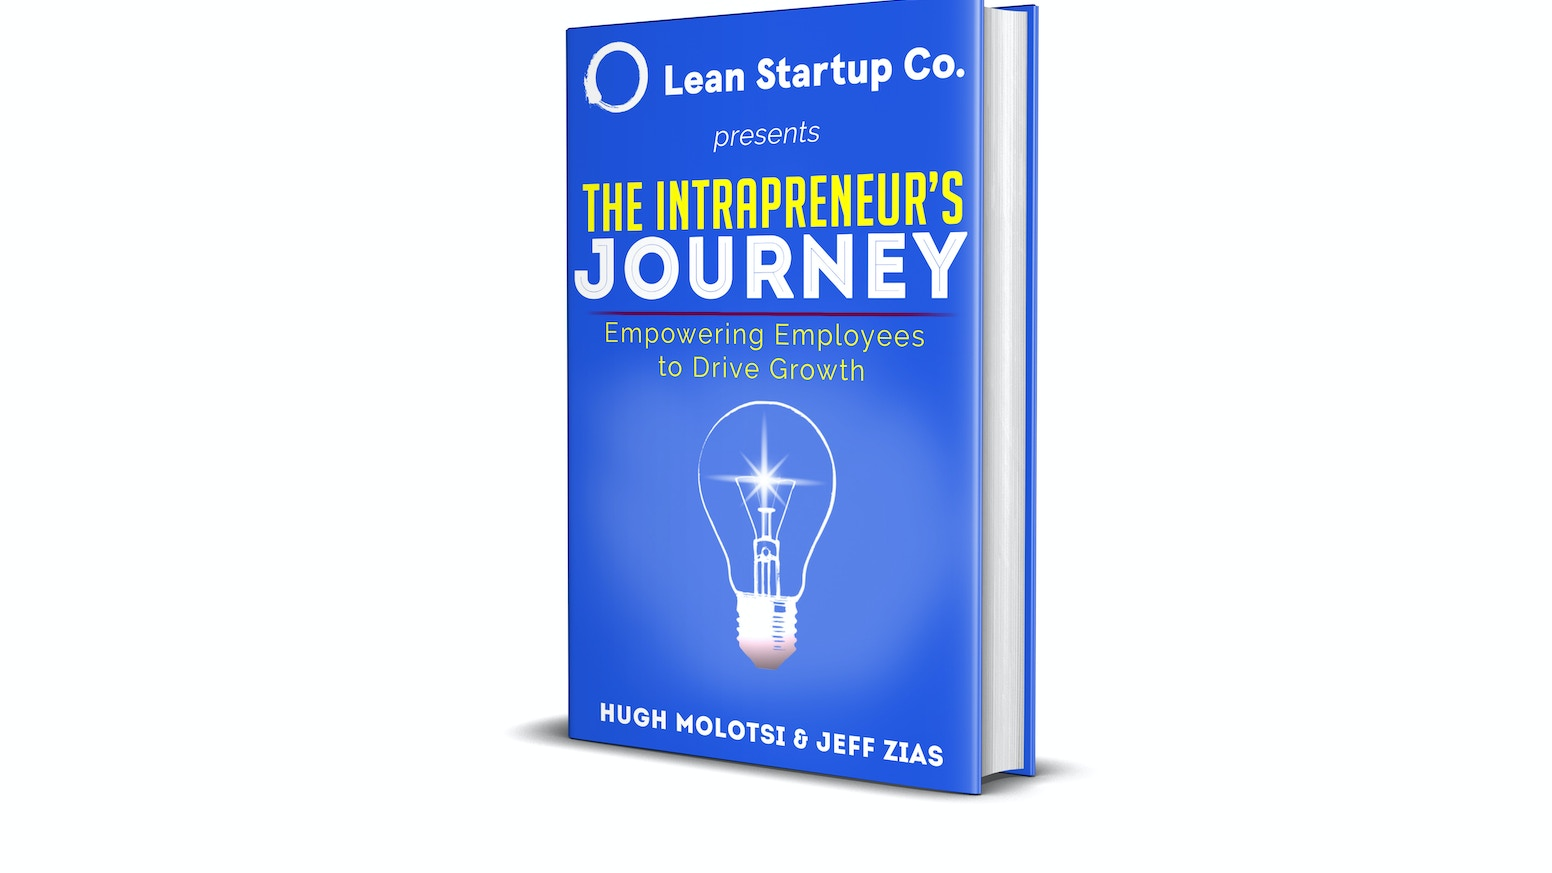 The Lean Startup Co  presents the Intrapreneur's Journey by